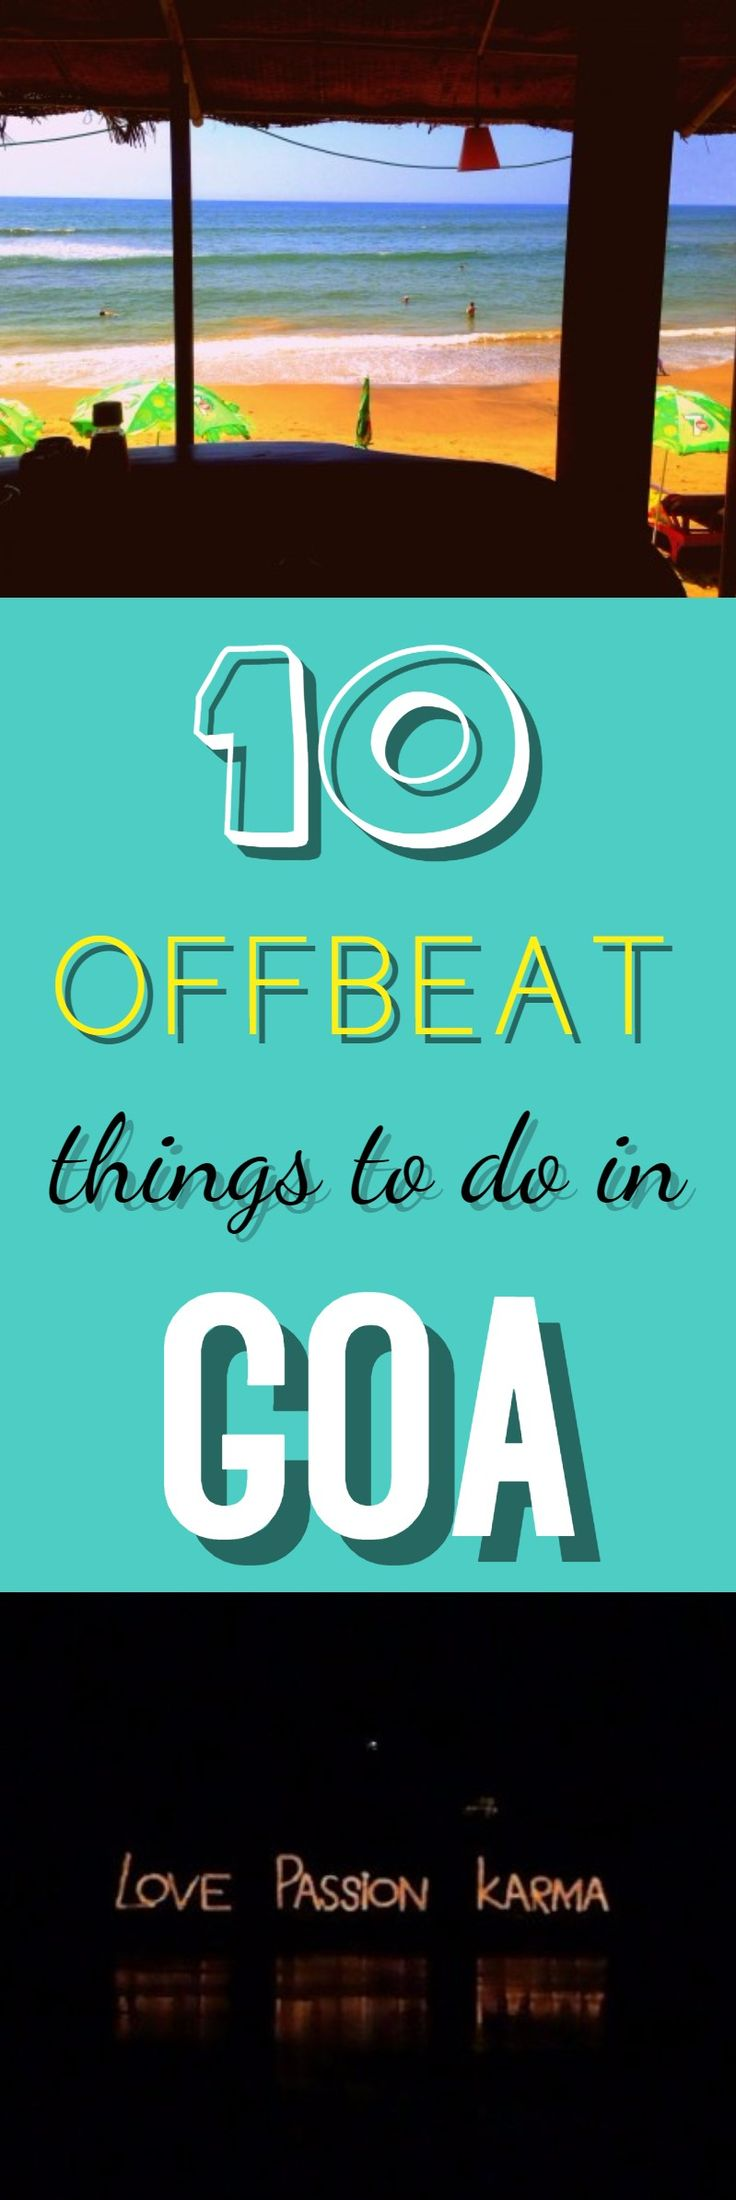 Go Goa, Gone? If 'NO' then Go Now! Because it's a peak season out there and is the best time to visit this Portuguese paradise. 10 Offbeat things to do in Goa.